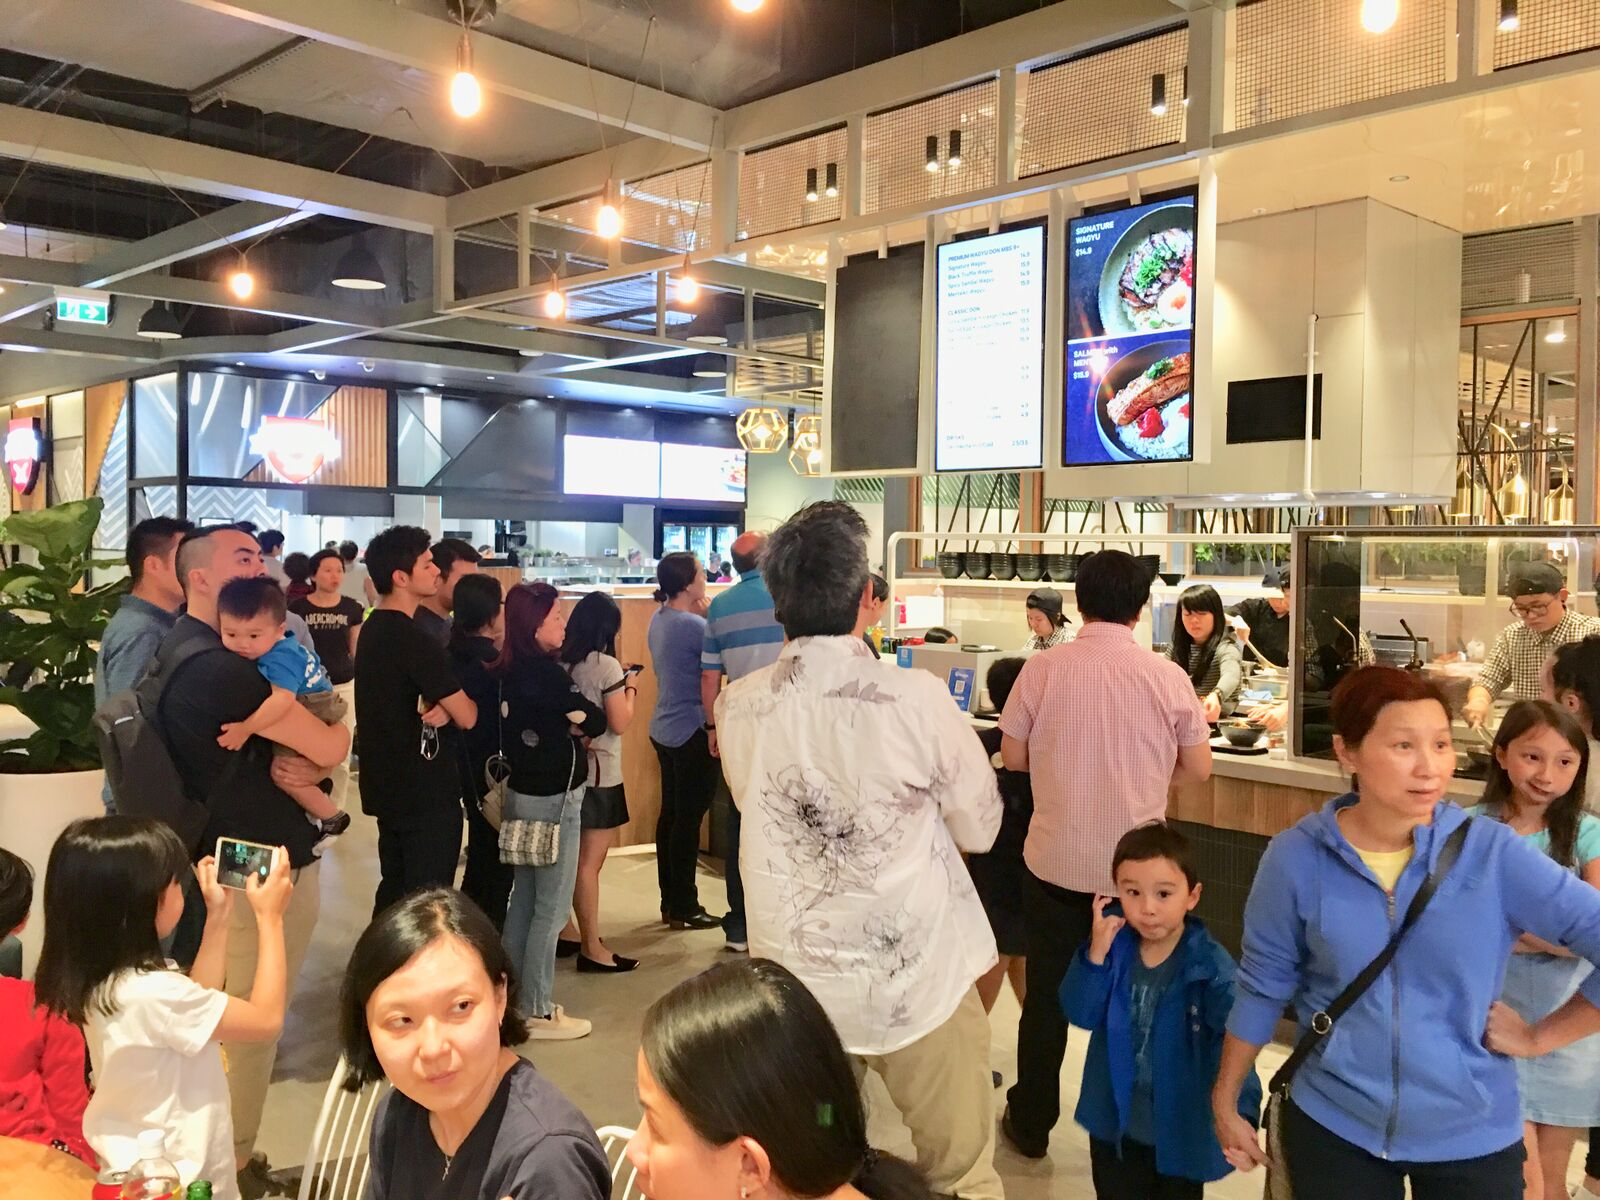 Japanese Iron Chef partners with OMI to bring premium menu to food courts.